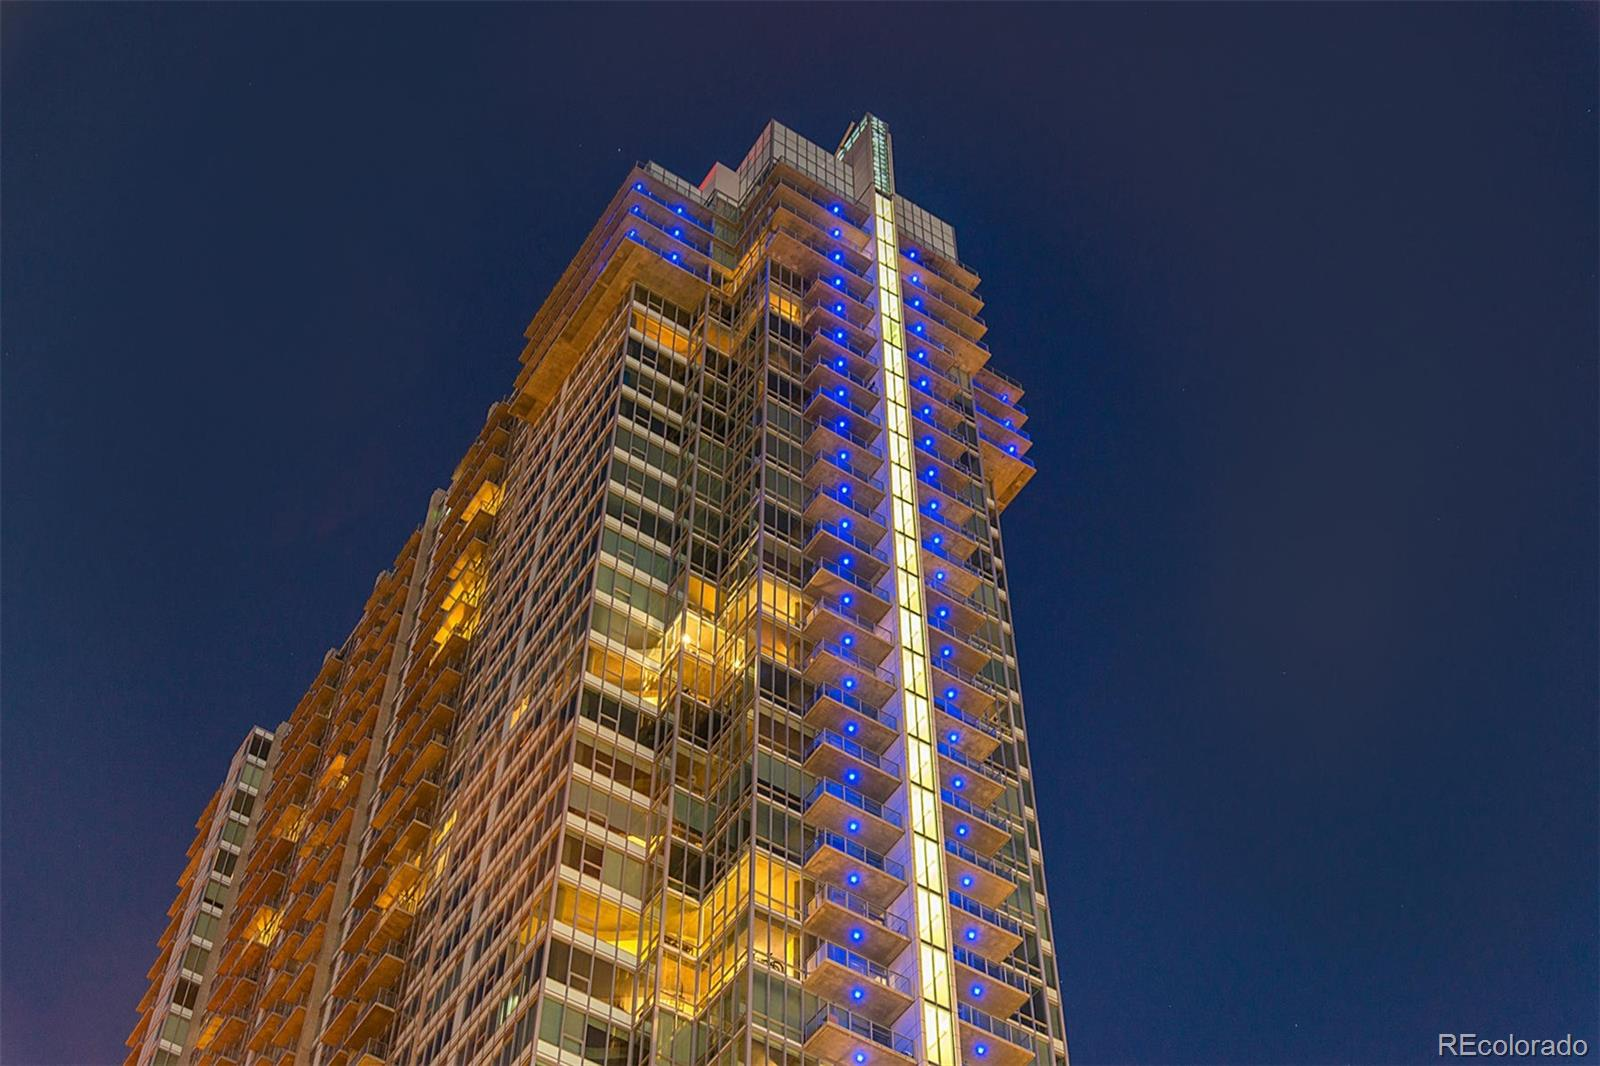 Come thrive in one of Denver's most sought after premier luxury residences! See the Spire difference. Located high up on the 41st floor, this great unit offers City and Mountain views that will truly amaze. New hardwood flooring, new carpet and lighting make this unit turn-key. Everything you need is here including high-end custom built-in closets with drawers and cabinets providing an expansive amount of storage. Convenient washer/dryer in unit. Floor to ceiling windows bring in an abundance of natural light. Convenient new electric Hunter Douglas remote control shades provide privacy/lower light if needed. Access to wonderful amenities in the building including:SKY CLUB lounge, rooftop pool, hot tub, health club, multimedia lounge, theater, garage dog park, grilling areas, 10th floor event area, concierge desk, high security, and guest suites available. Theater District across the street with bars, clubs, coffee shops, shopping and just steps to light rail. The deeded parking spot on the 2nd floor and storage in the garage provides easy access and is one of the best locations in garage. This is the BEST offering for the price in the Spire. An excellent opportunity in a building with an amazing VIBE!